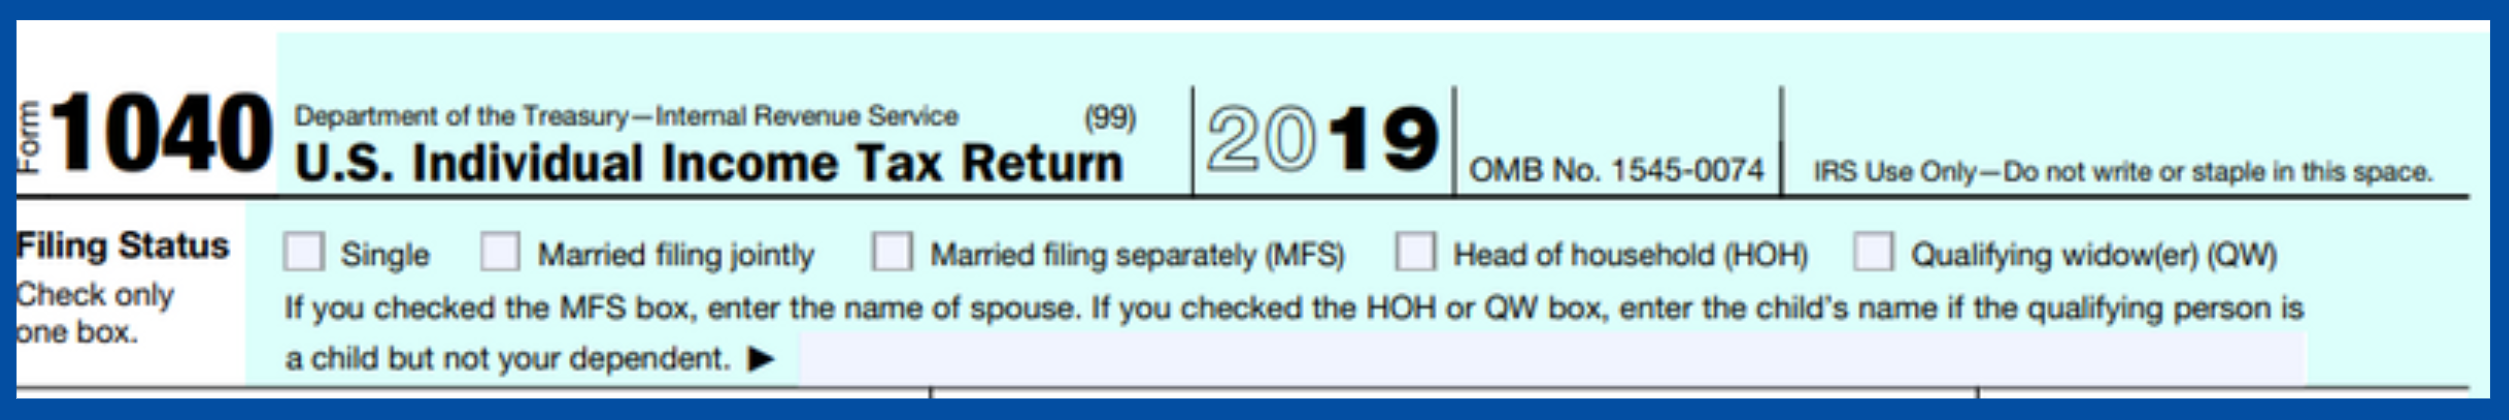 Snip of the top section of a 2019 1040 tax return